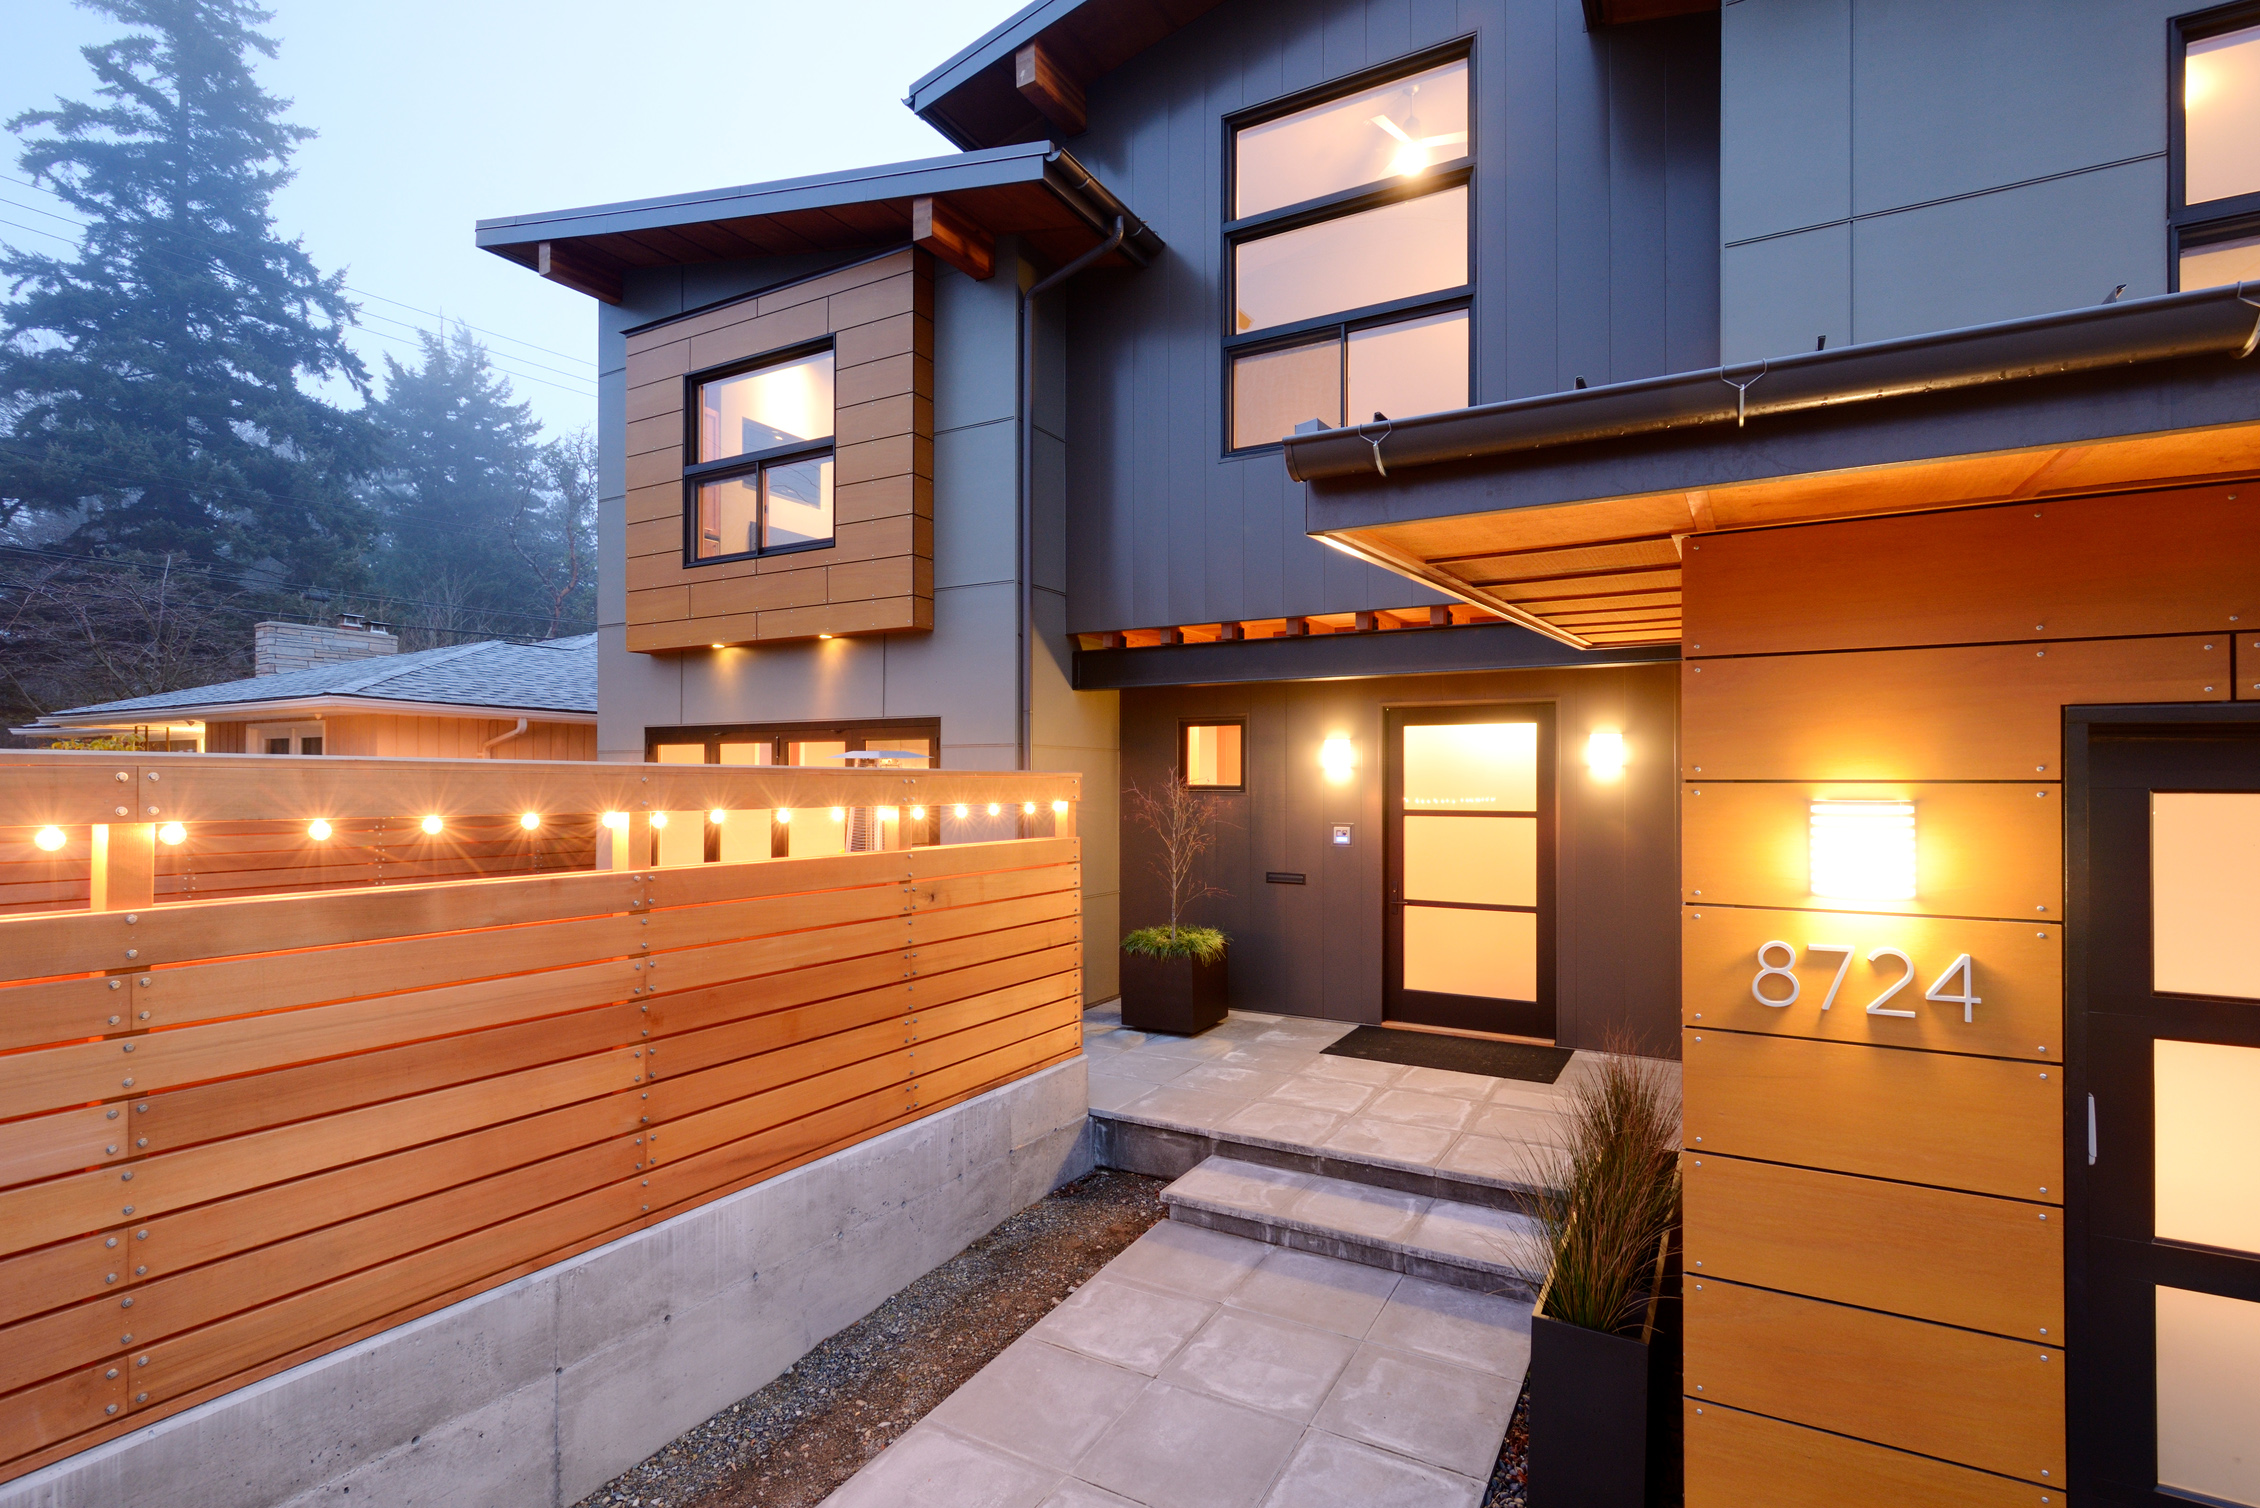 Project by Axiom Design + Build